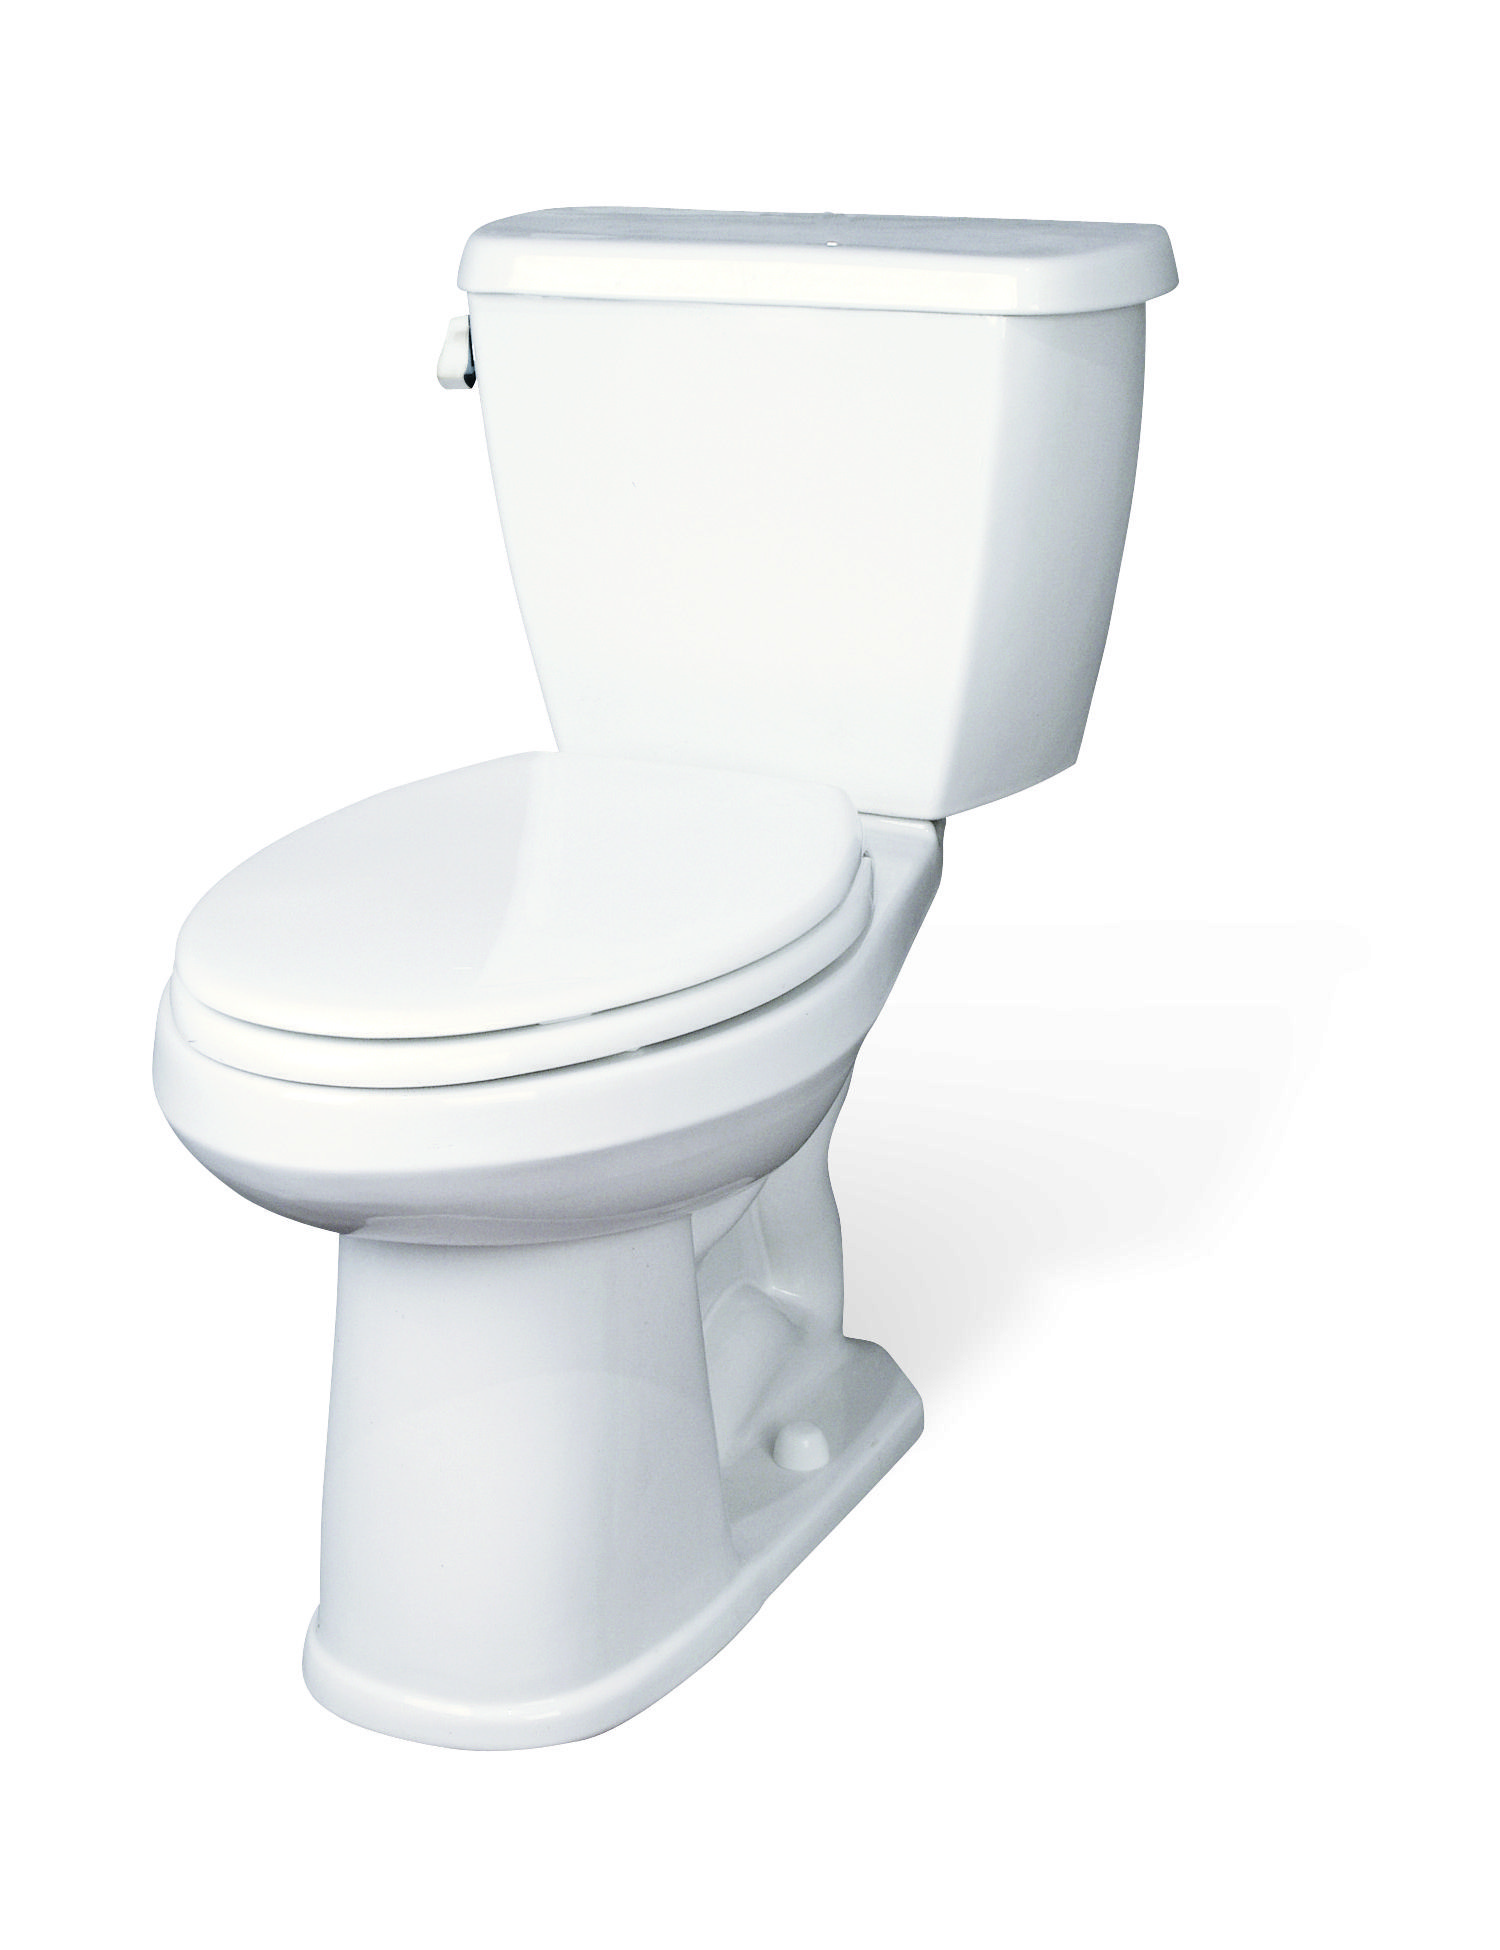 375 Avalanche 1 28 Gpf 12 Rough In Two Piece Elongated Ergoheight Toilet Ada Toilet Toilet Toilet Remodel